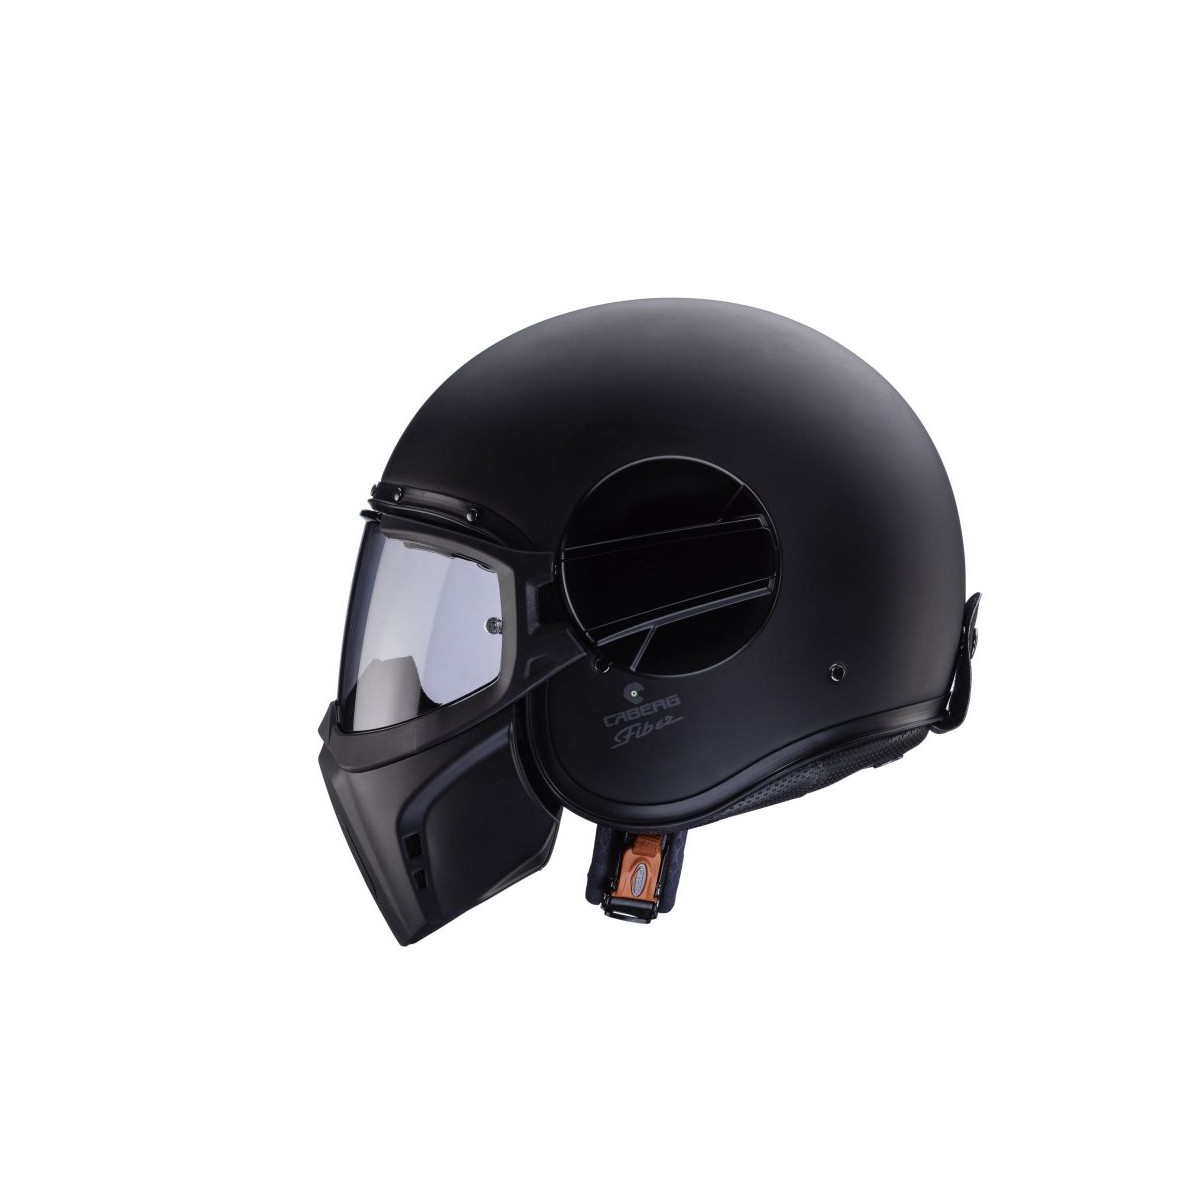 casque moto jet caberg vintage ghost moto. Black Bedroom Furniture Sets. Home Design Ideas